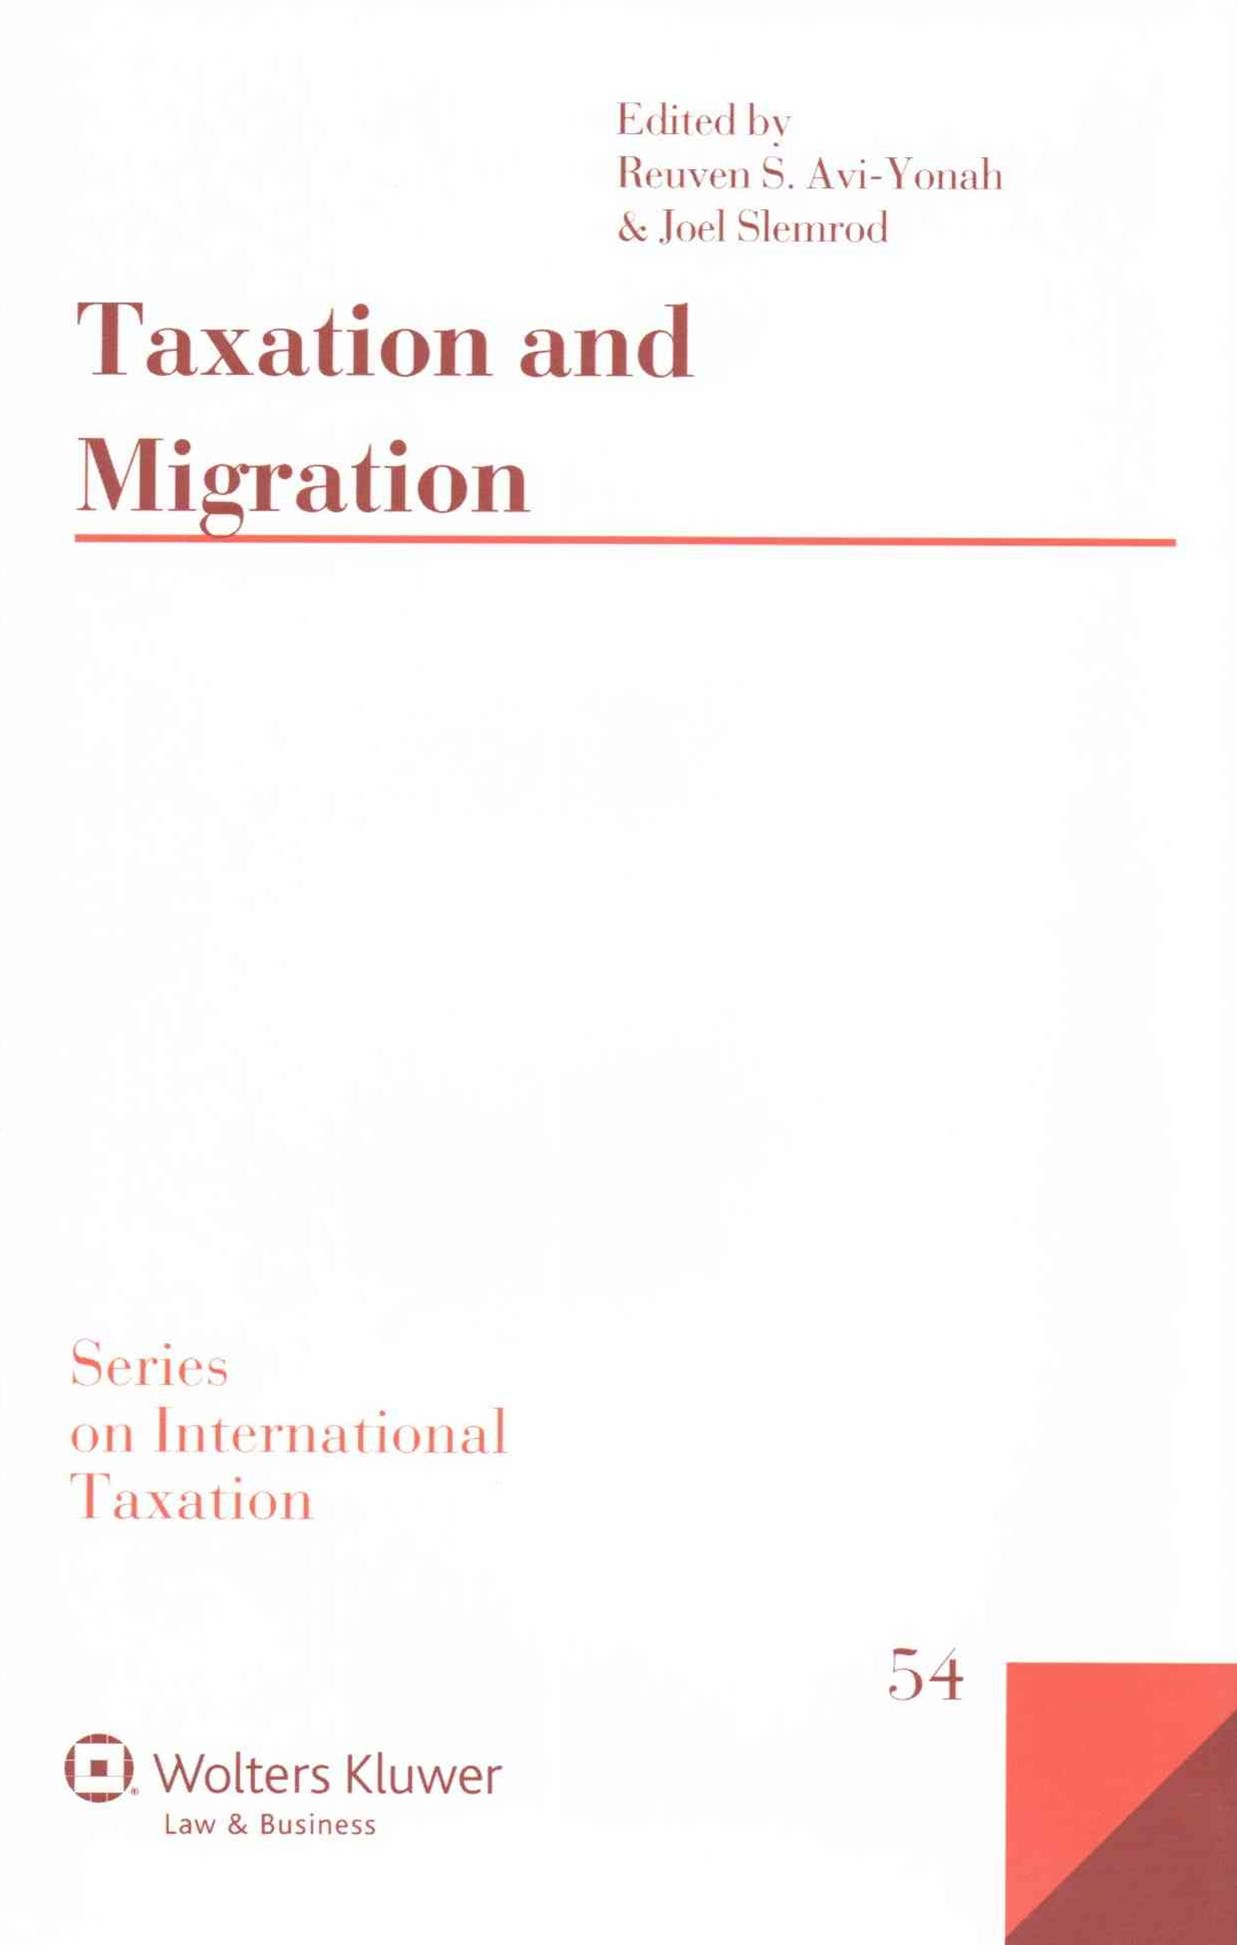 Taxation and Migration